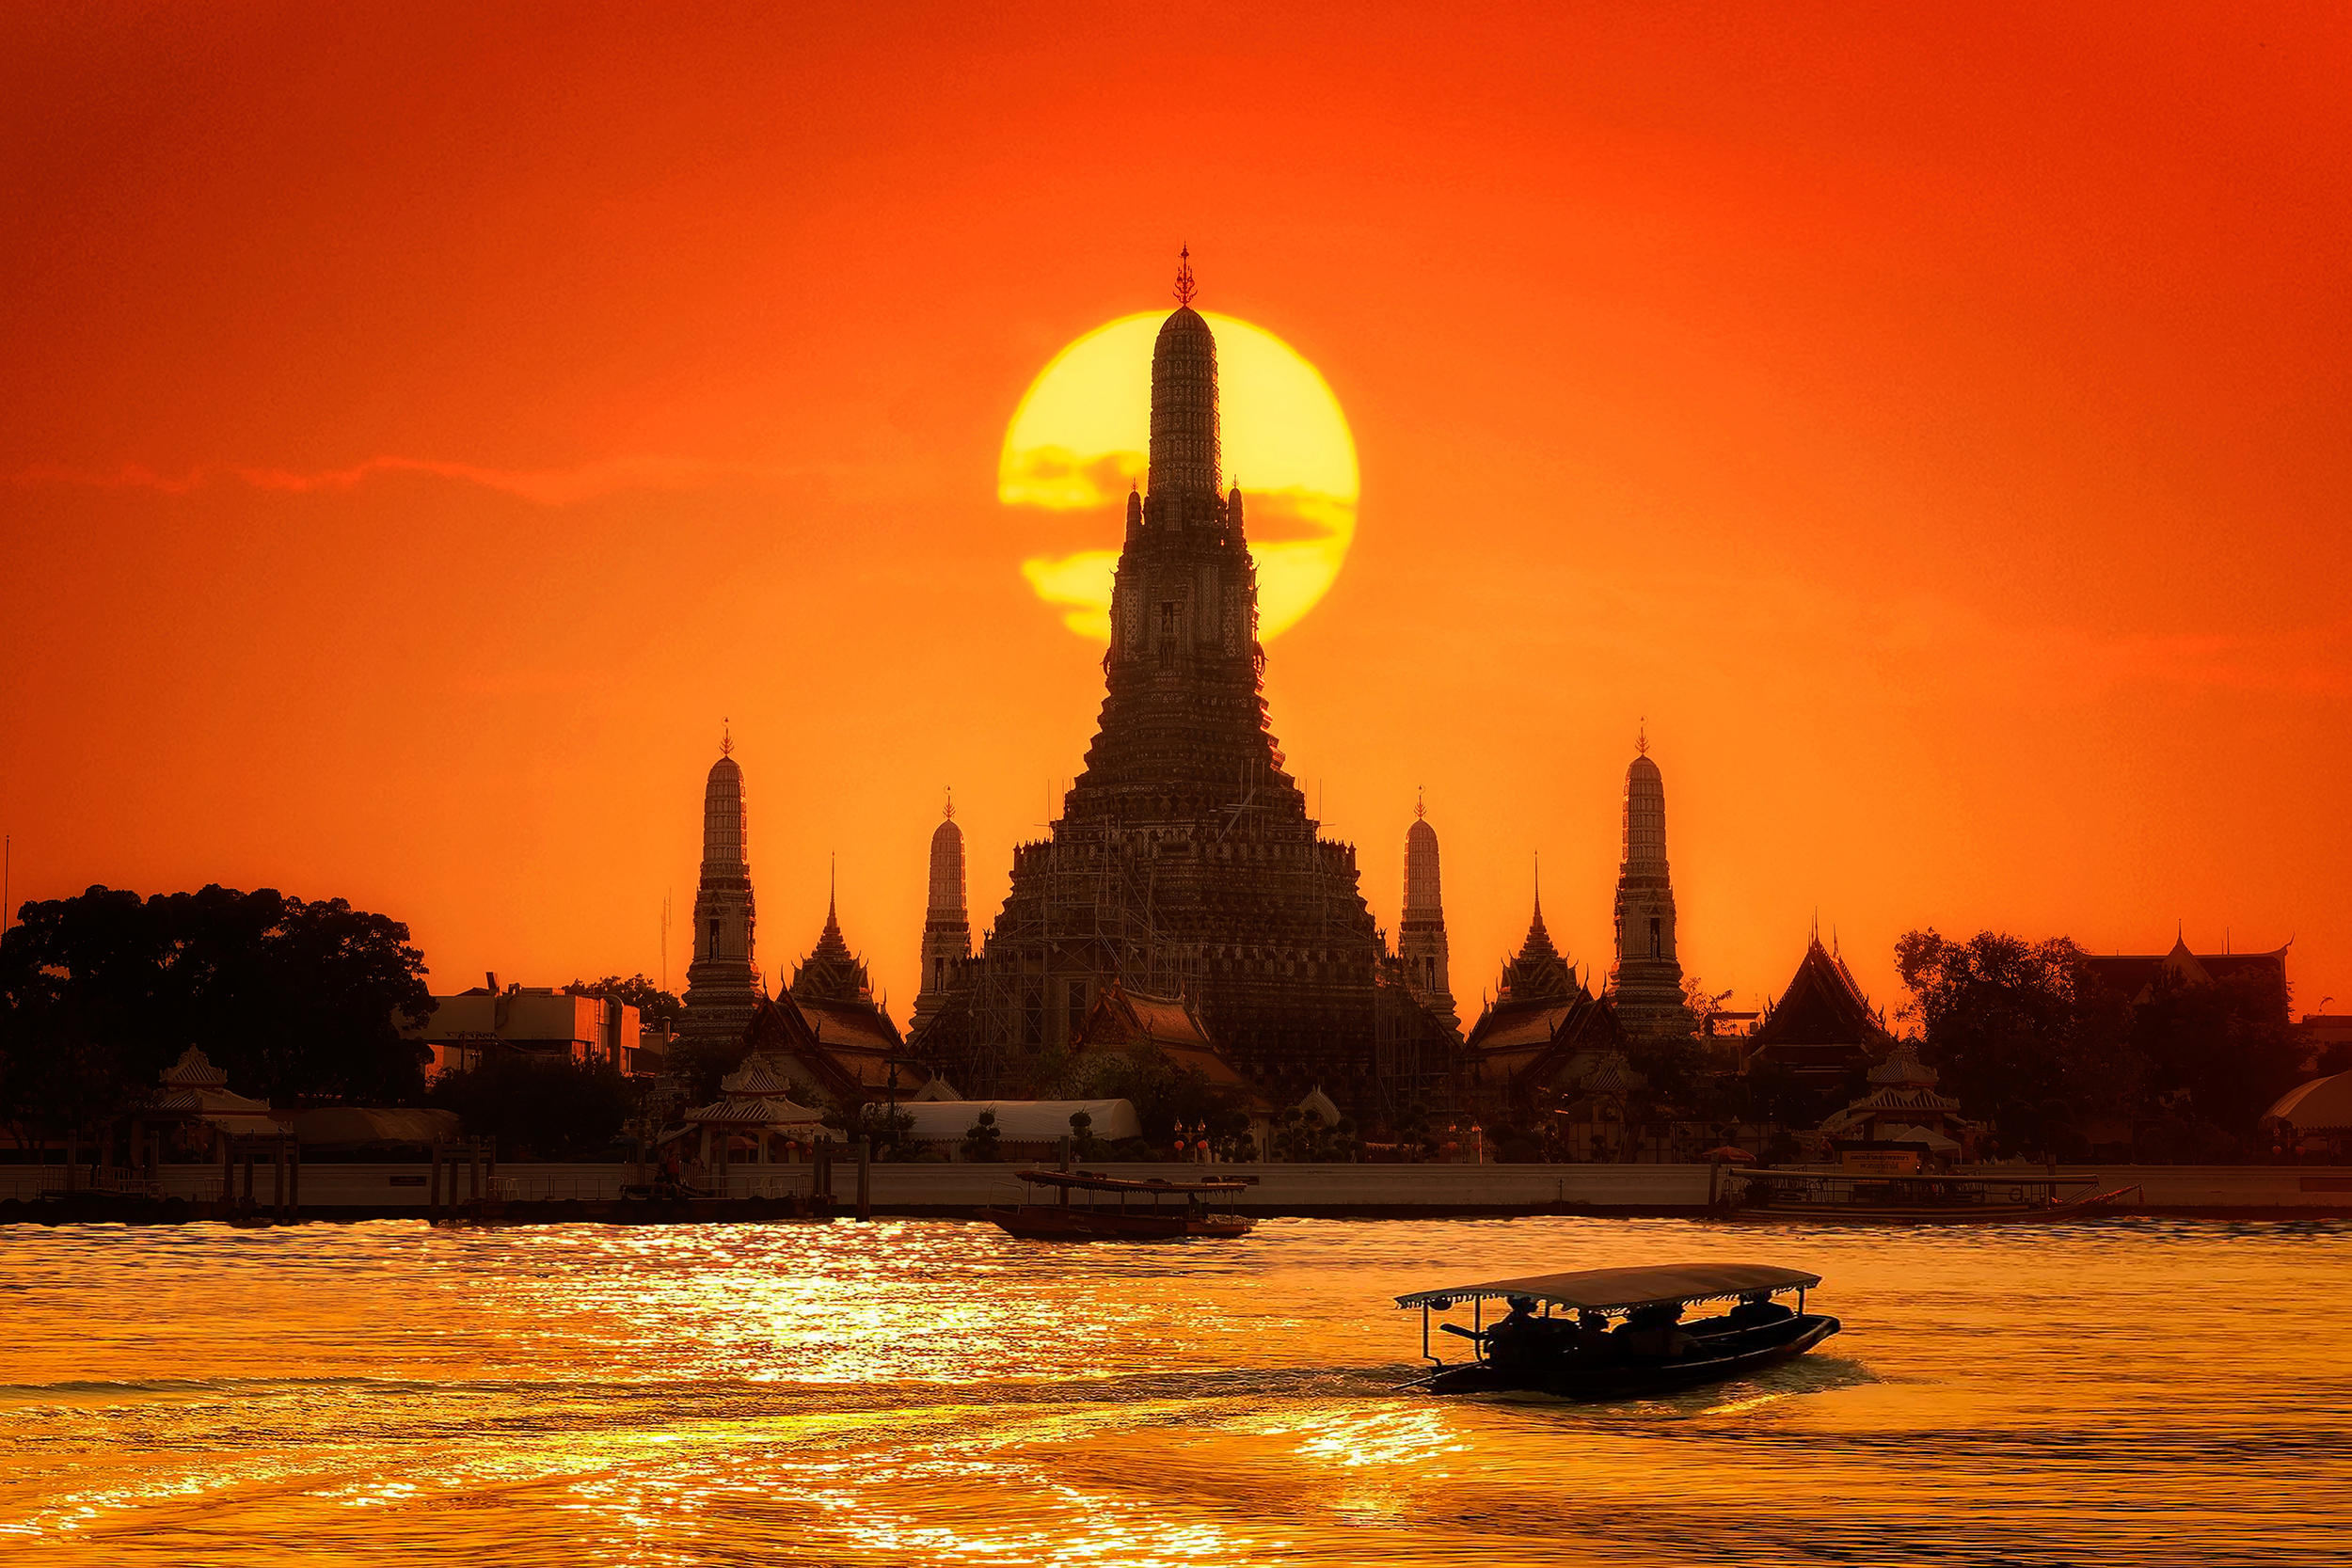 A temple on the water at sunset